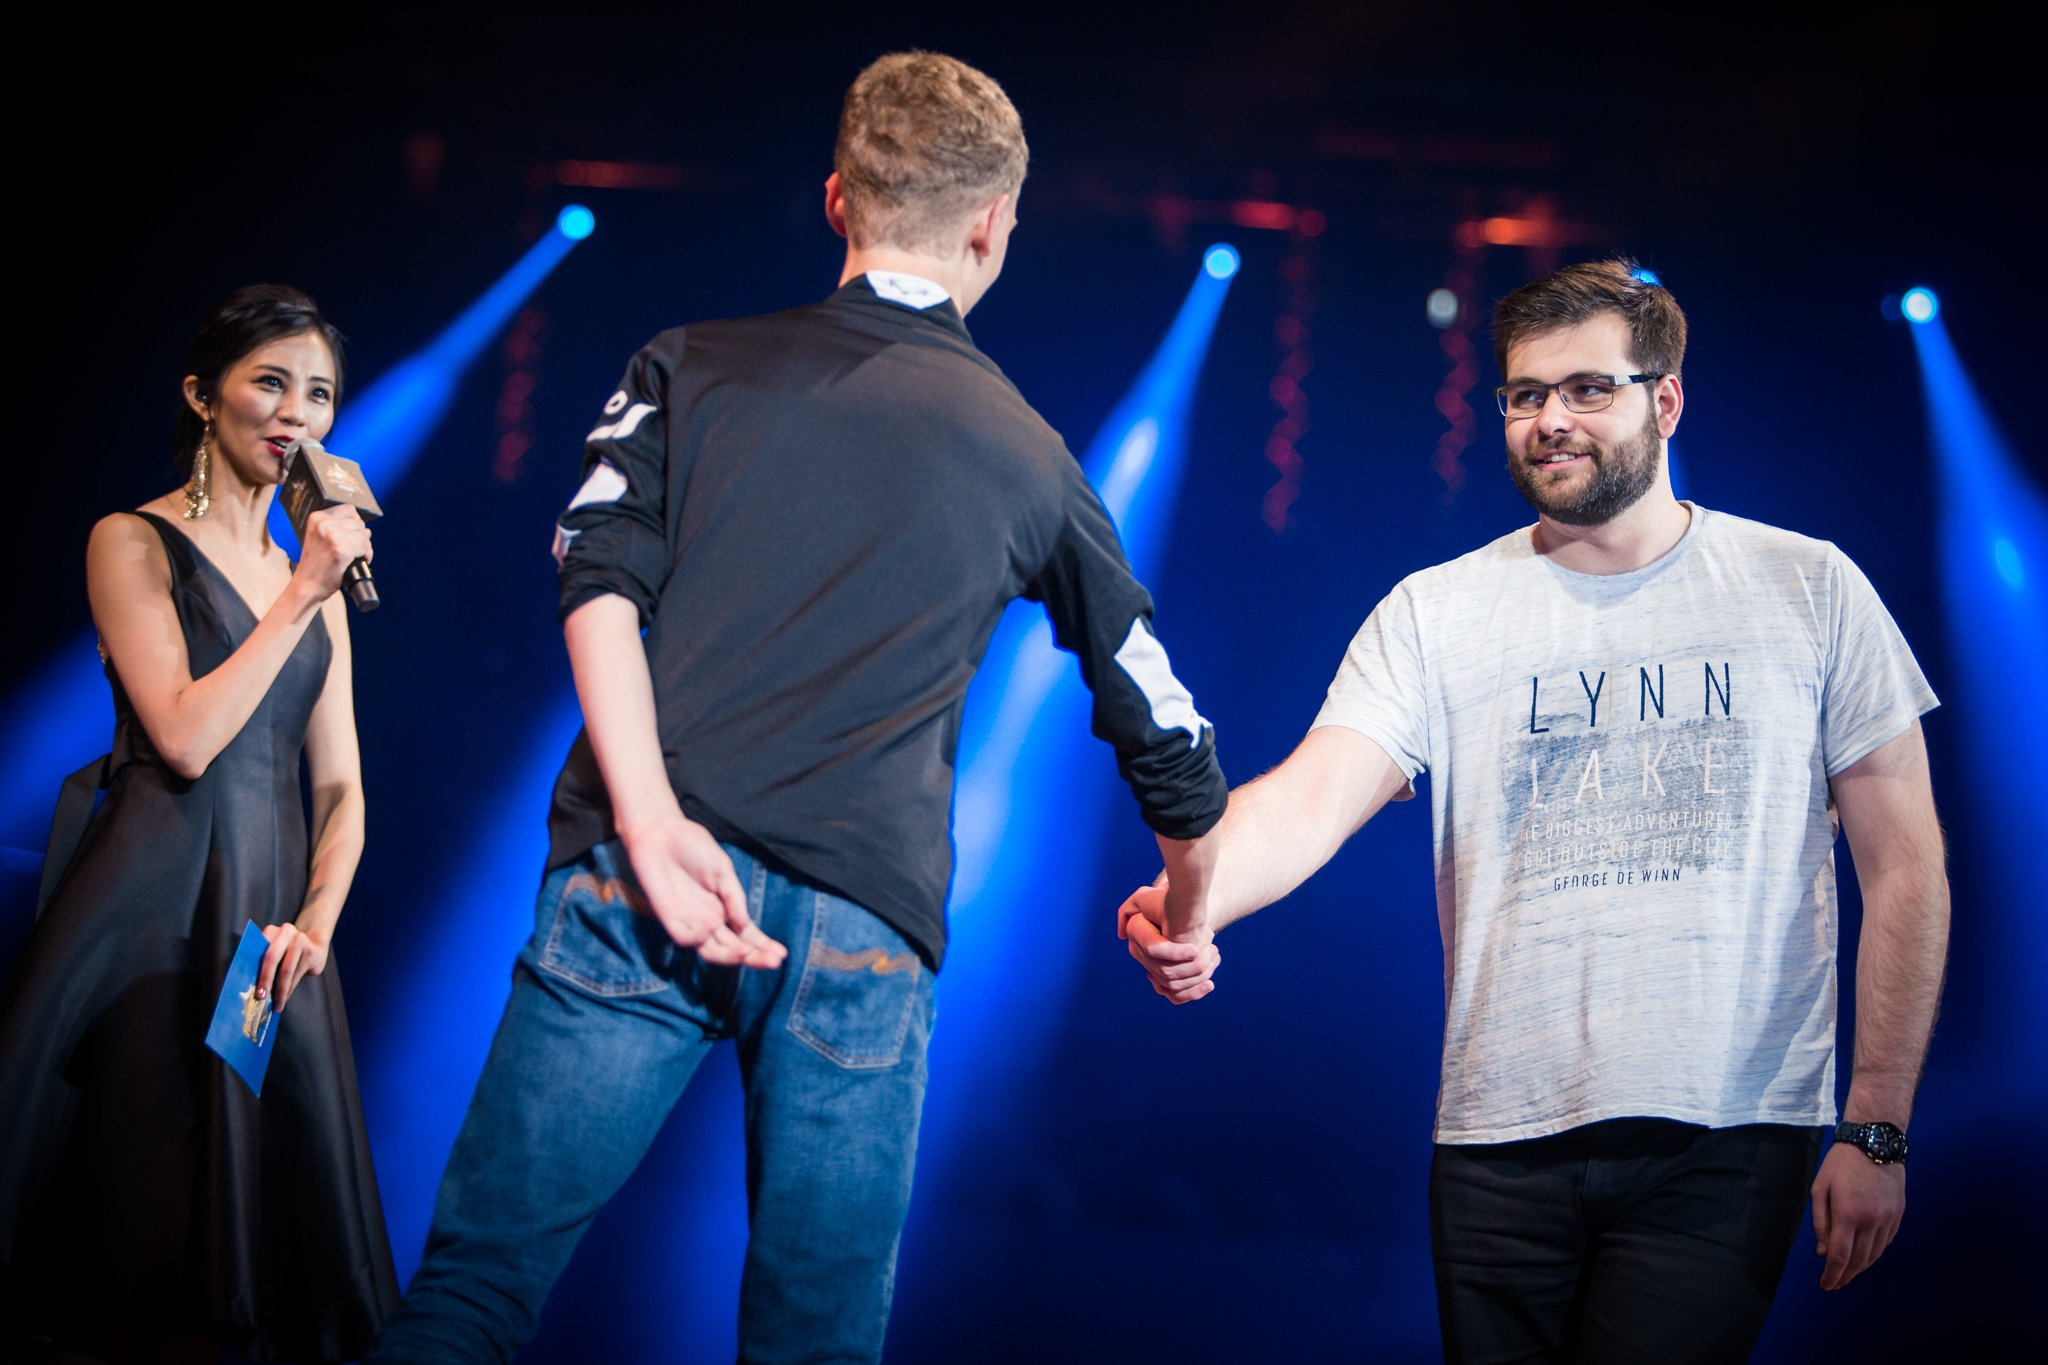 Hunterace and Viper at the start of the Grand Finals (Photo credit: Helena Kristiansson for Blizzard Entertainment)